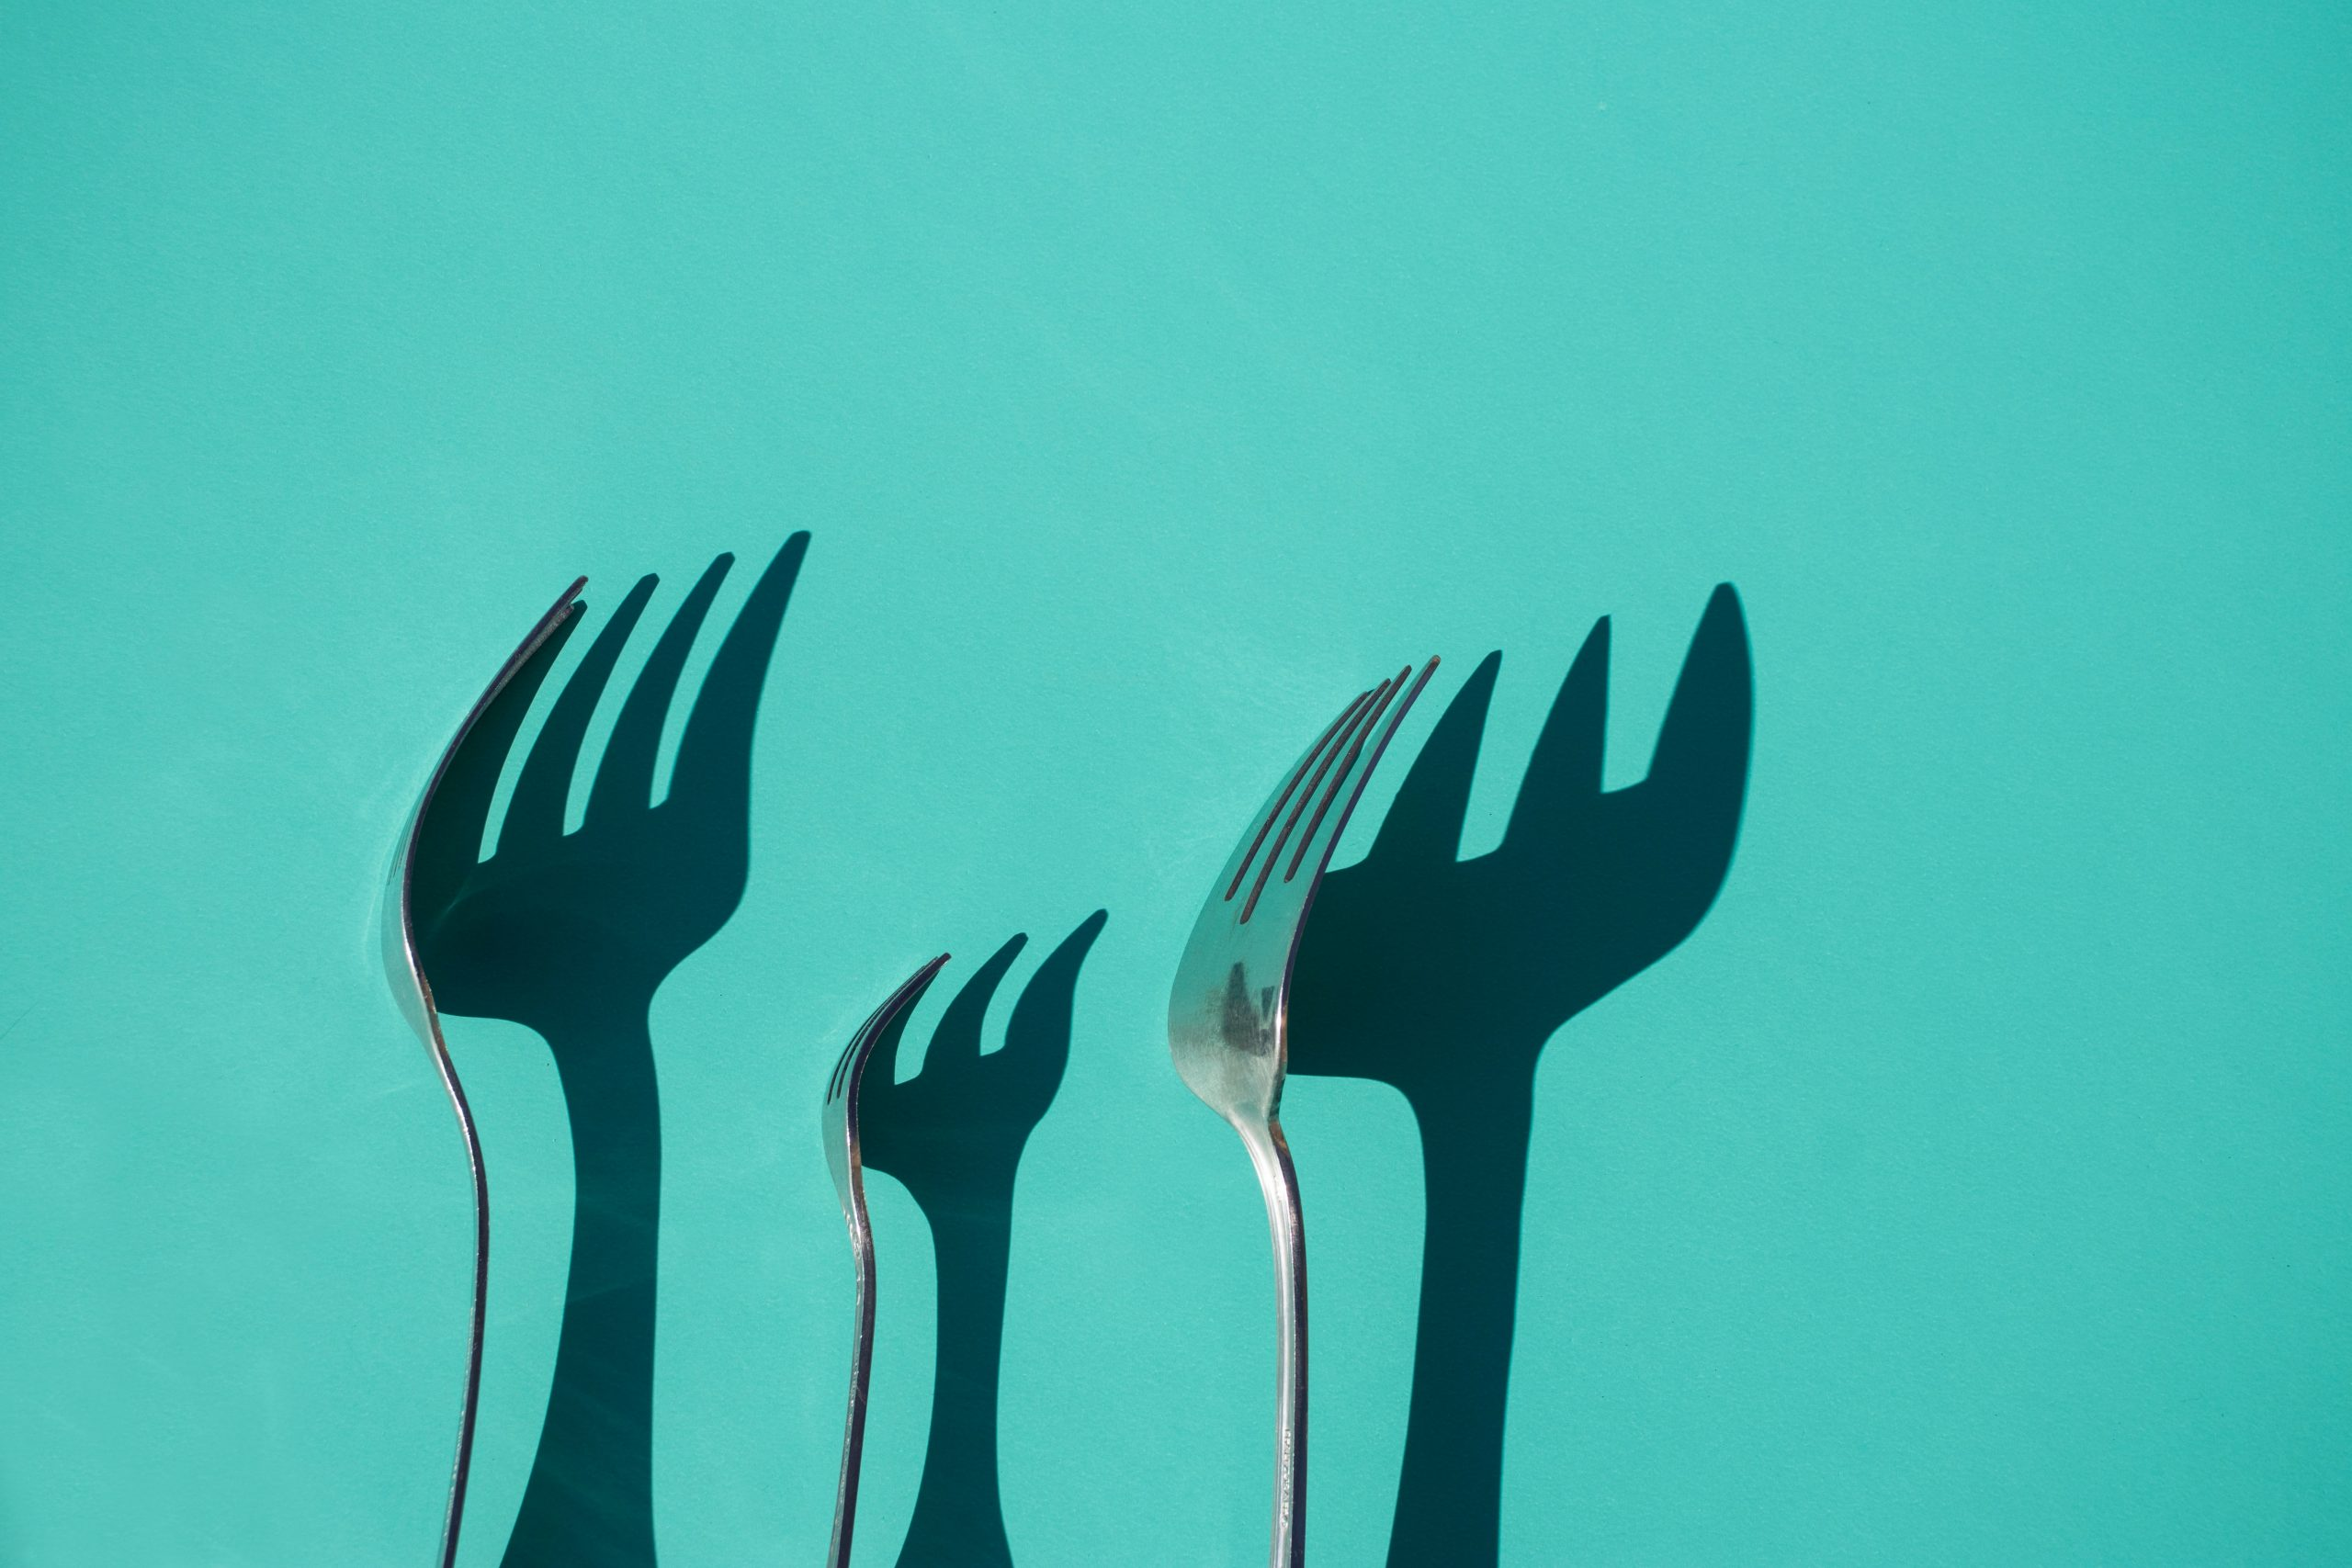 Photo of shadowed forks on background | Diet and meal replacements